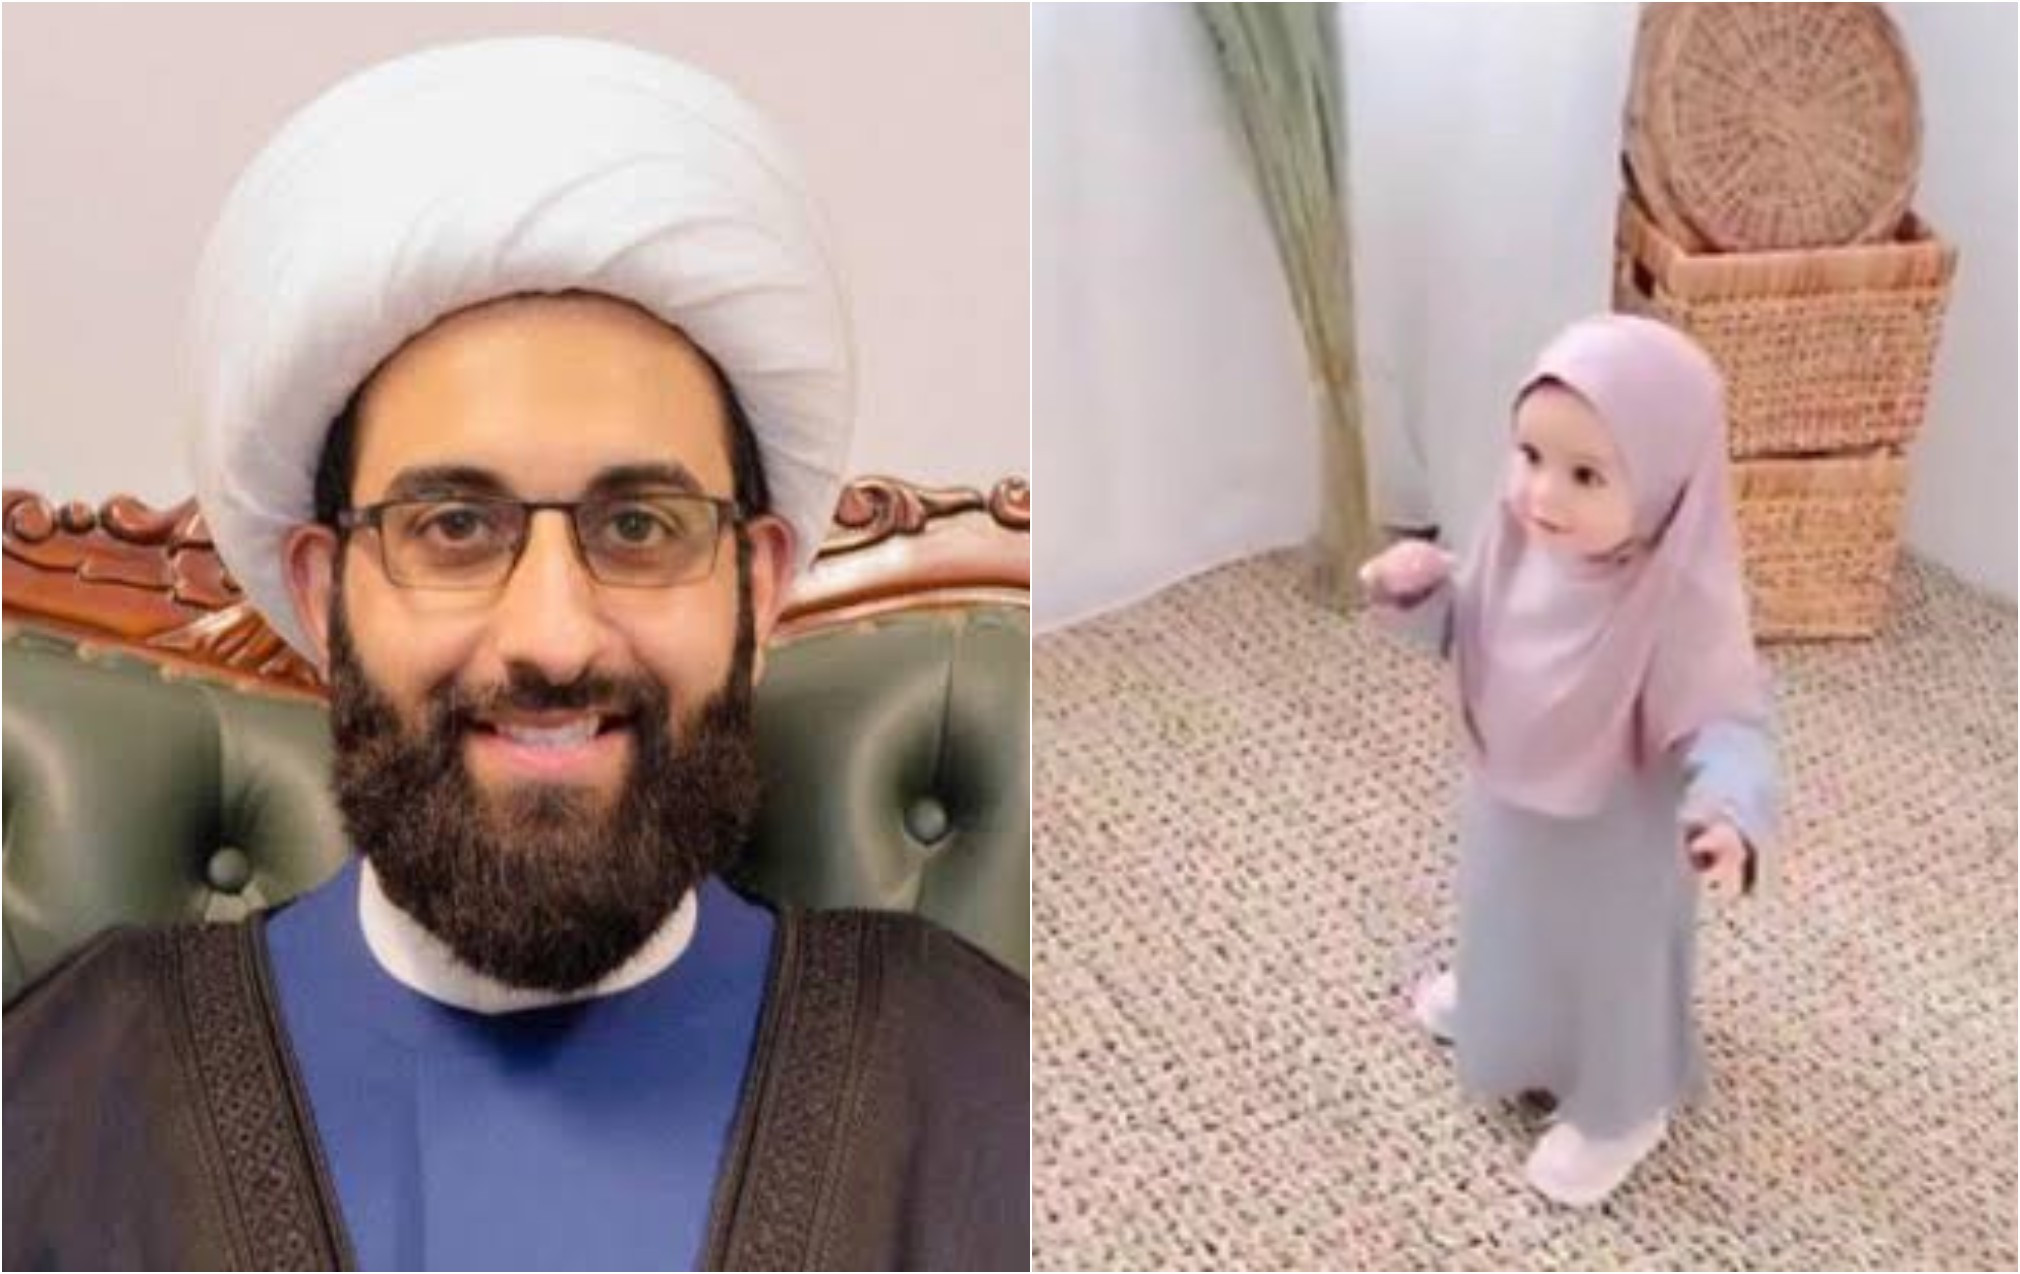 Photo of Covering hijab on little girls is sexualizing them – Imam Tawhidi